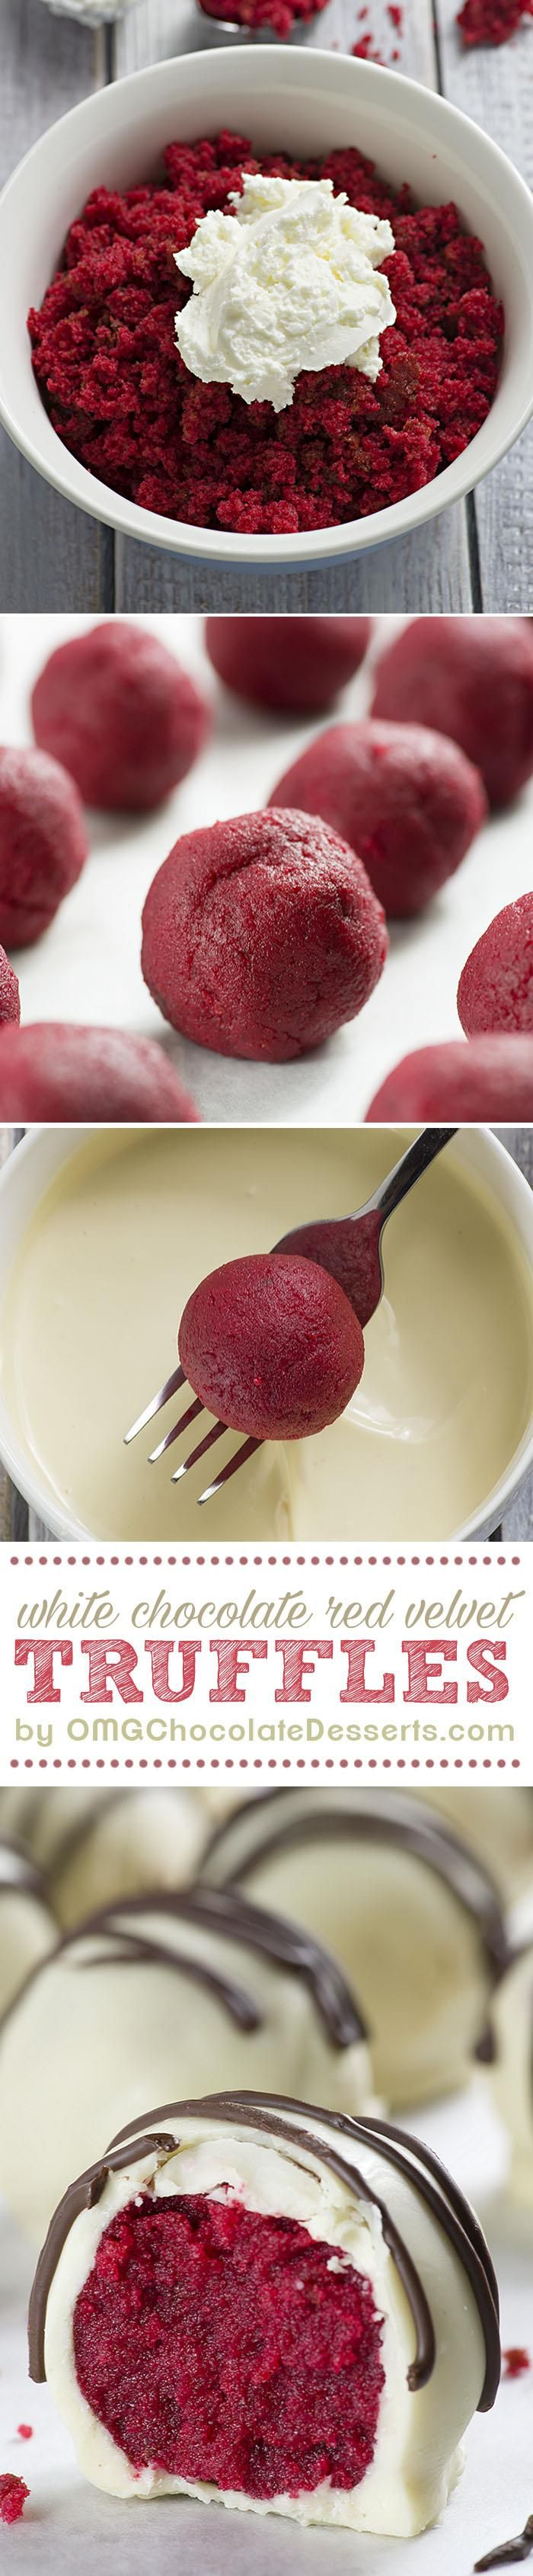 Red Velvet Truffles are a must make Valentine's Day treat. Delicious red velvet cake balls covered with white chocolate. So easy and oh so yummy!!! OMGchocolateDesserts.com